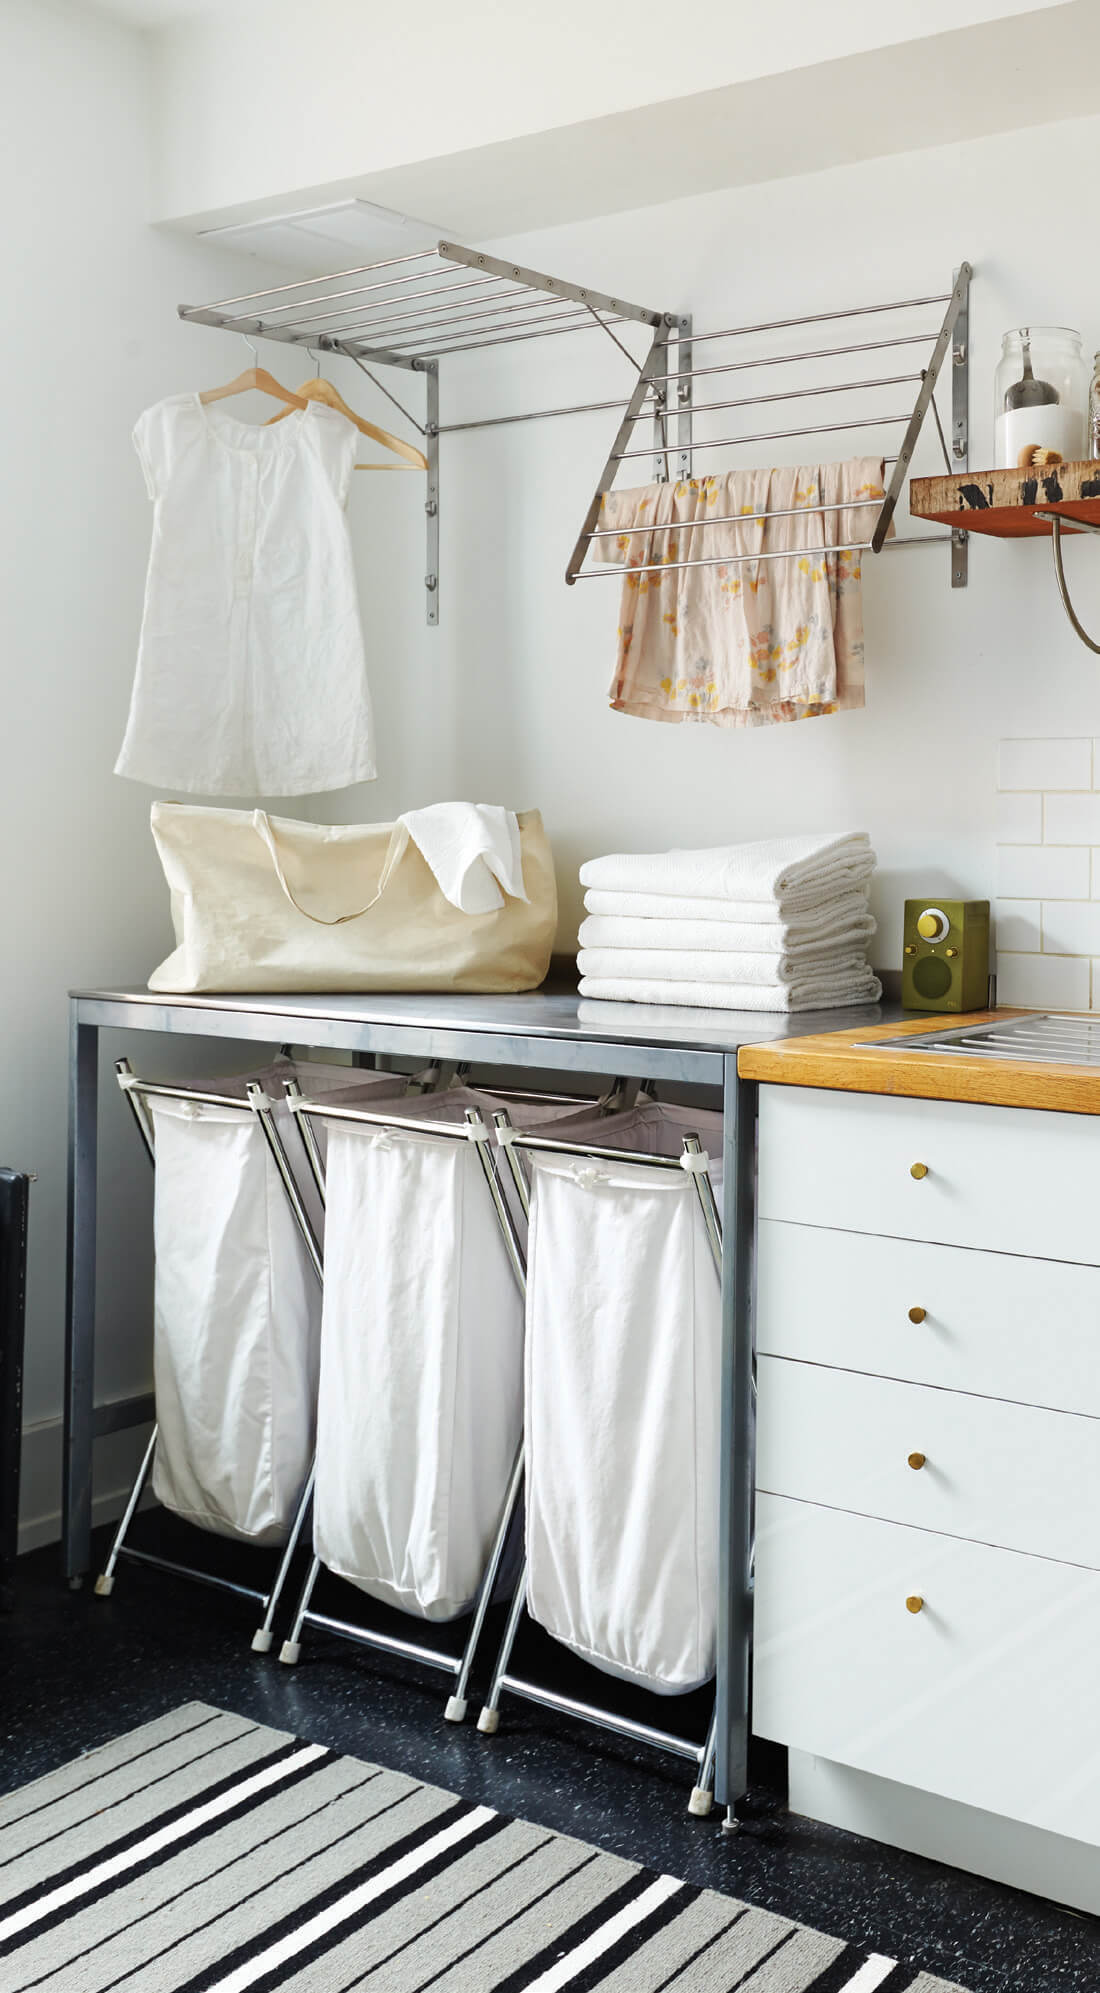 Easy, Beachy Sorting Laundry Room